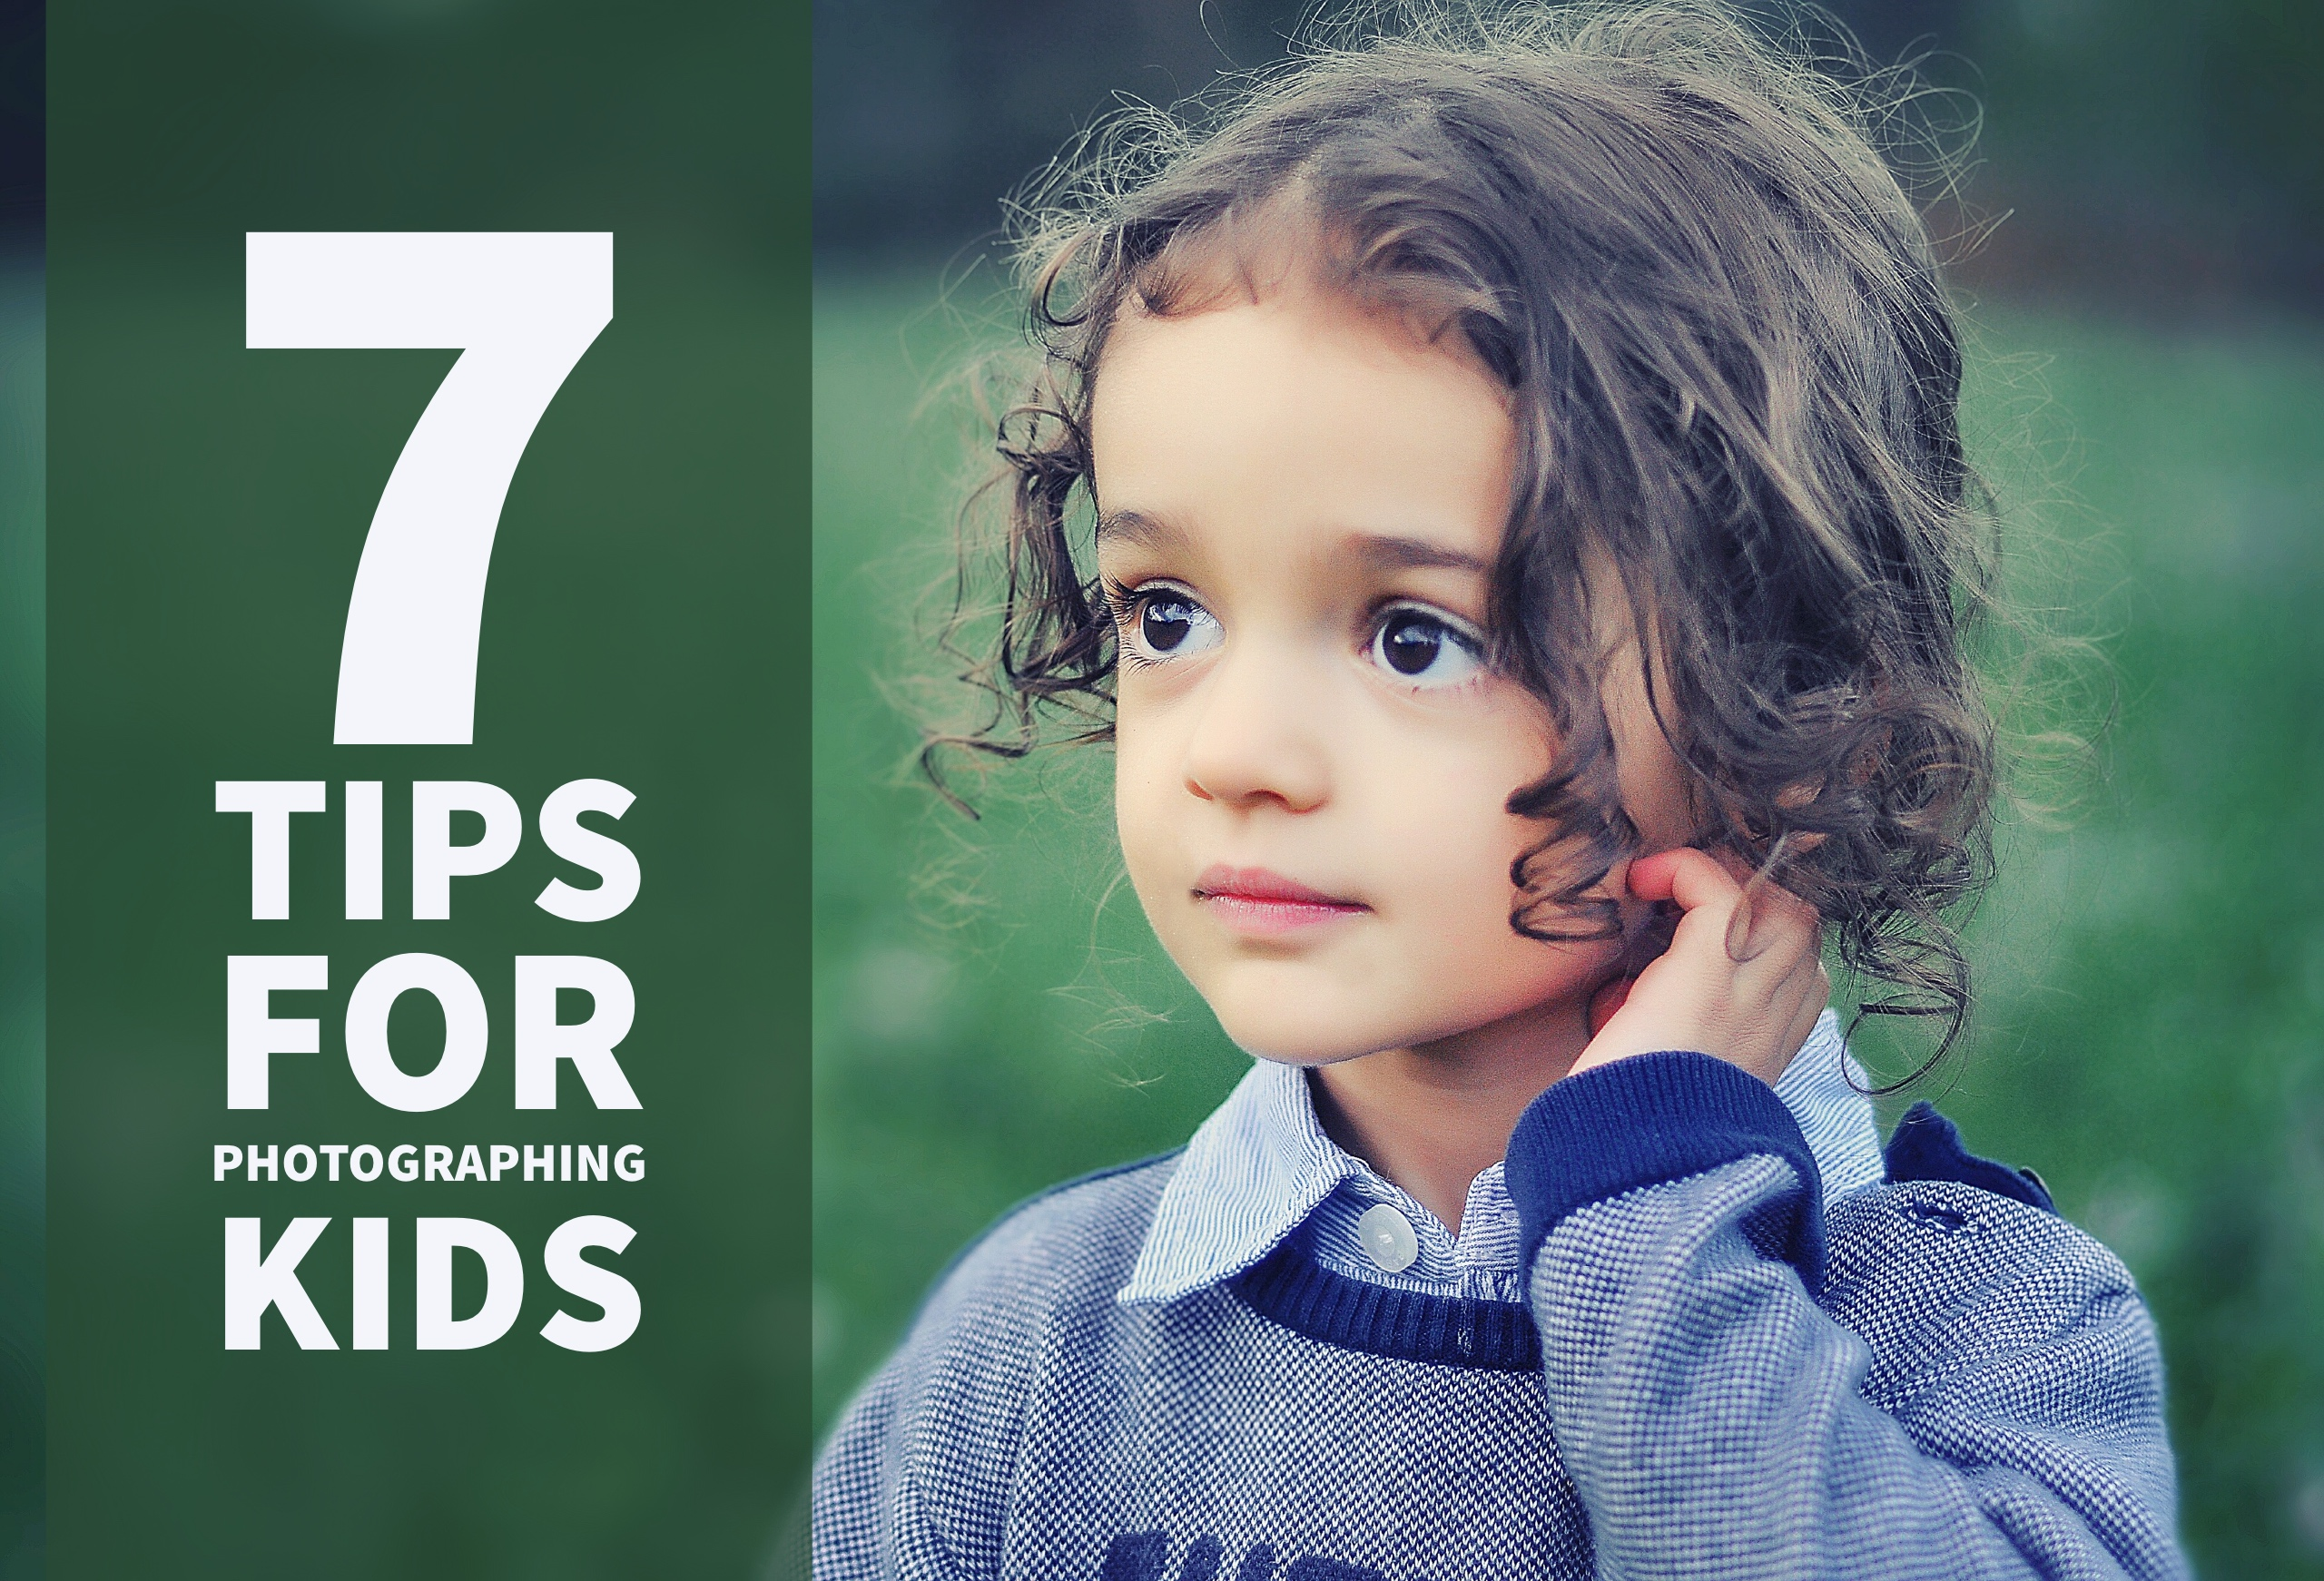 7 Tips for Photographing Kids